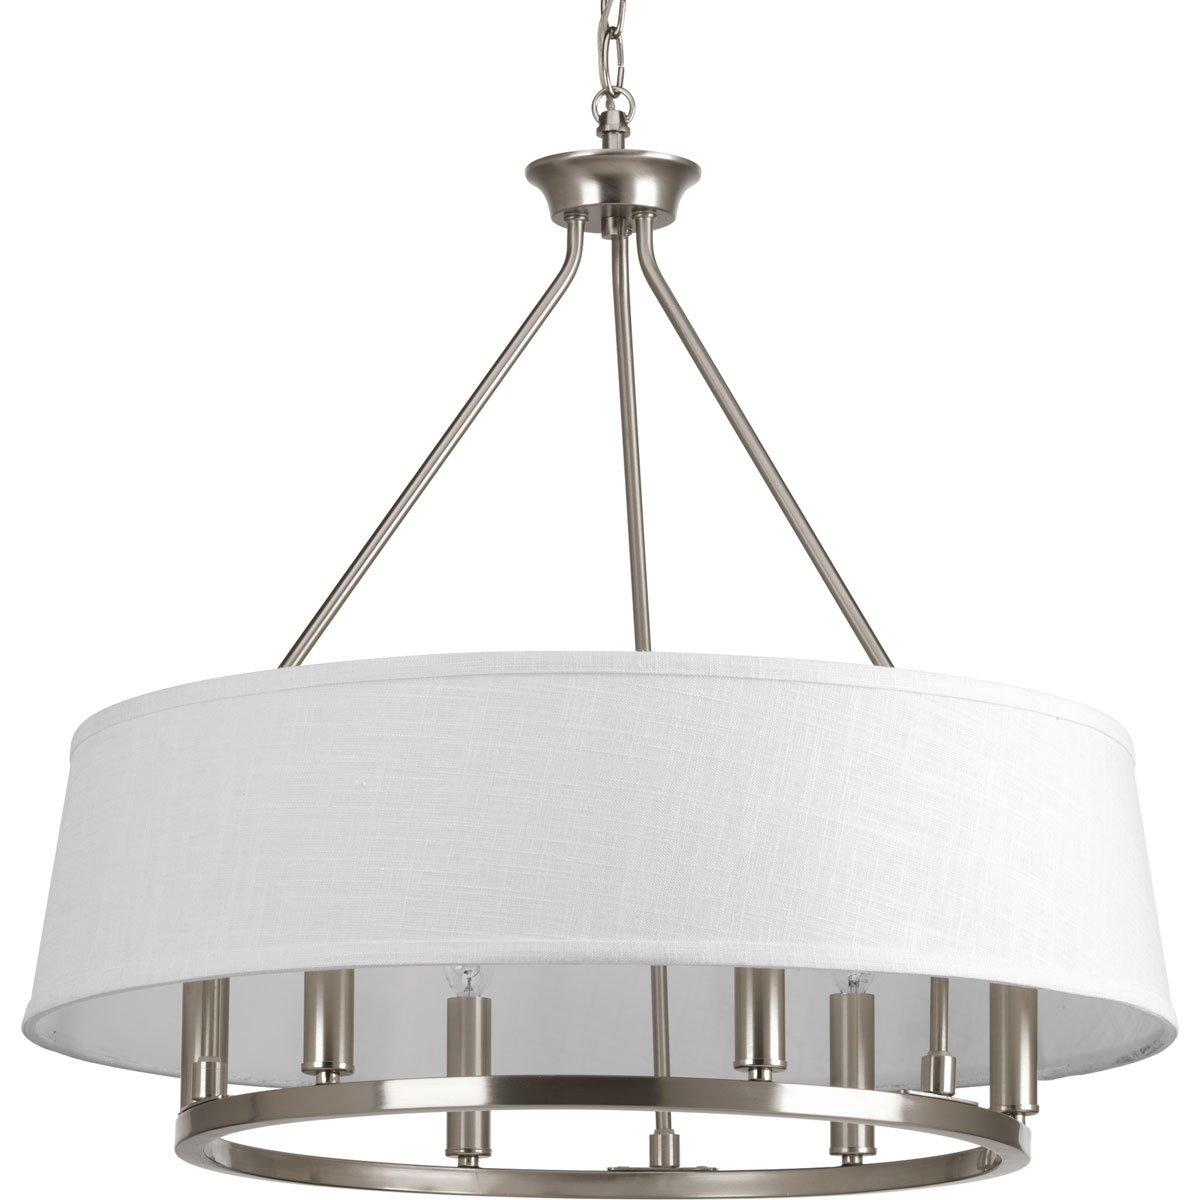 """Progress Lighting P4618-09 Traditional/Formal 6-60W Cand Chandelier, 97"""" x 24"""" x 22.375"""", Brushed Nickel"""